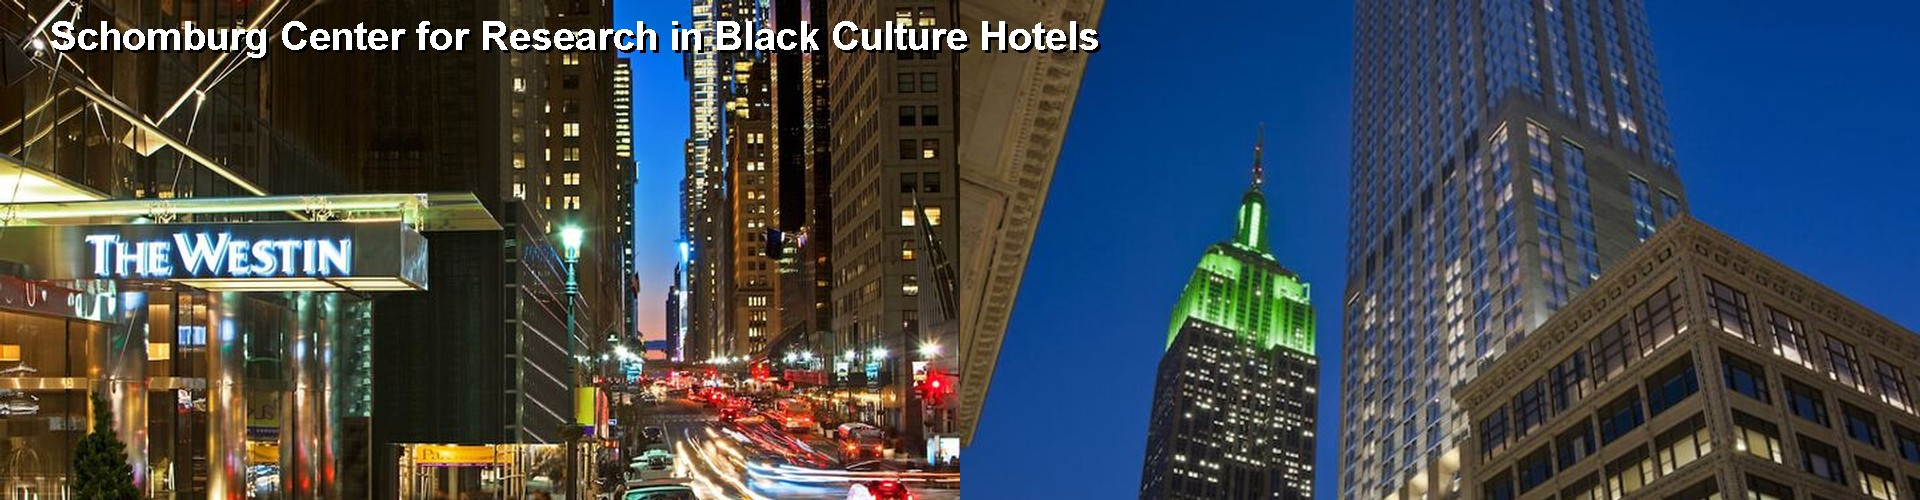 5 Best Hotels near Schomburg Center for Research in Black Culture